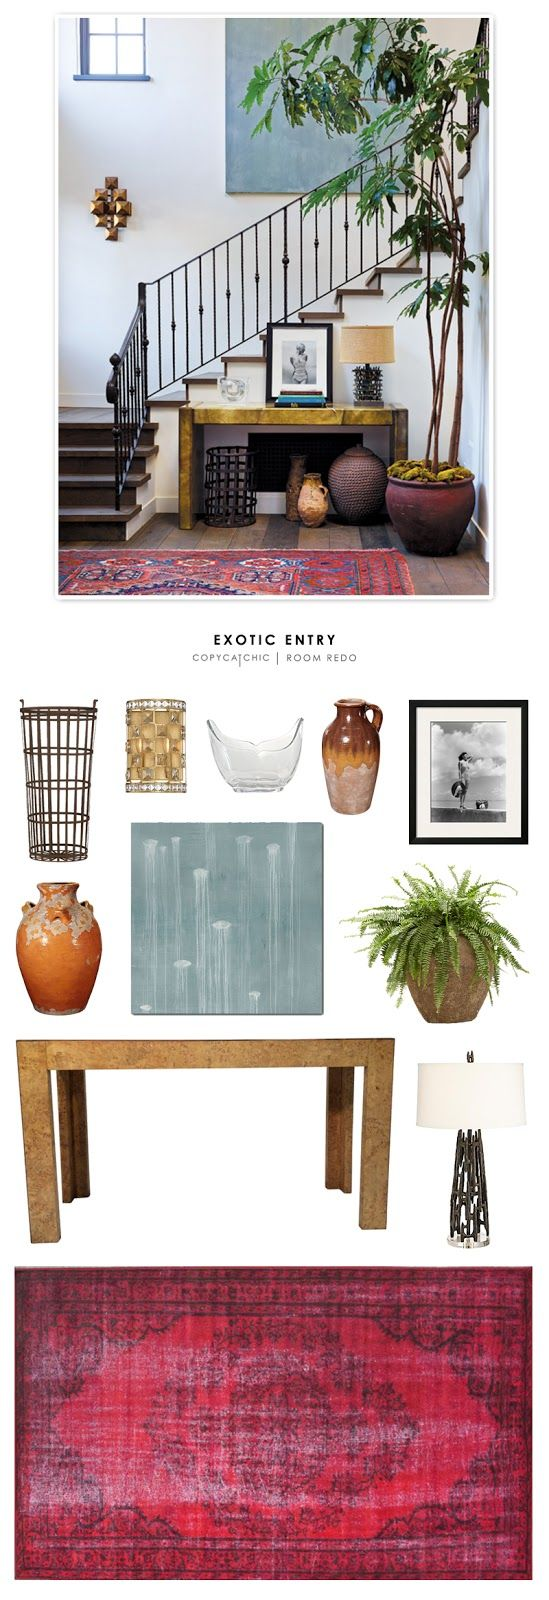 An eclectic, exotic entryway designed by Vanessa Alexander and recreated for less by Copy Cat Chic by @audreycdyer